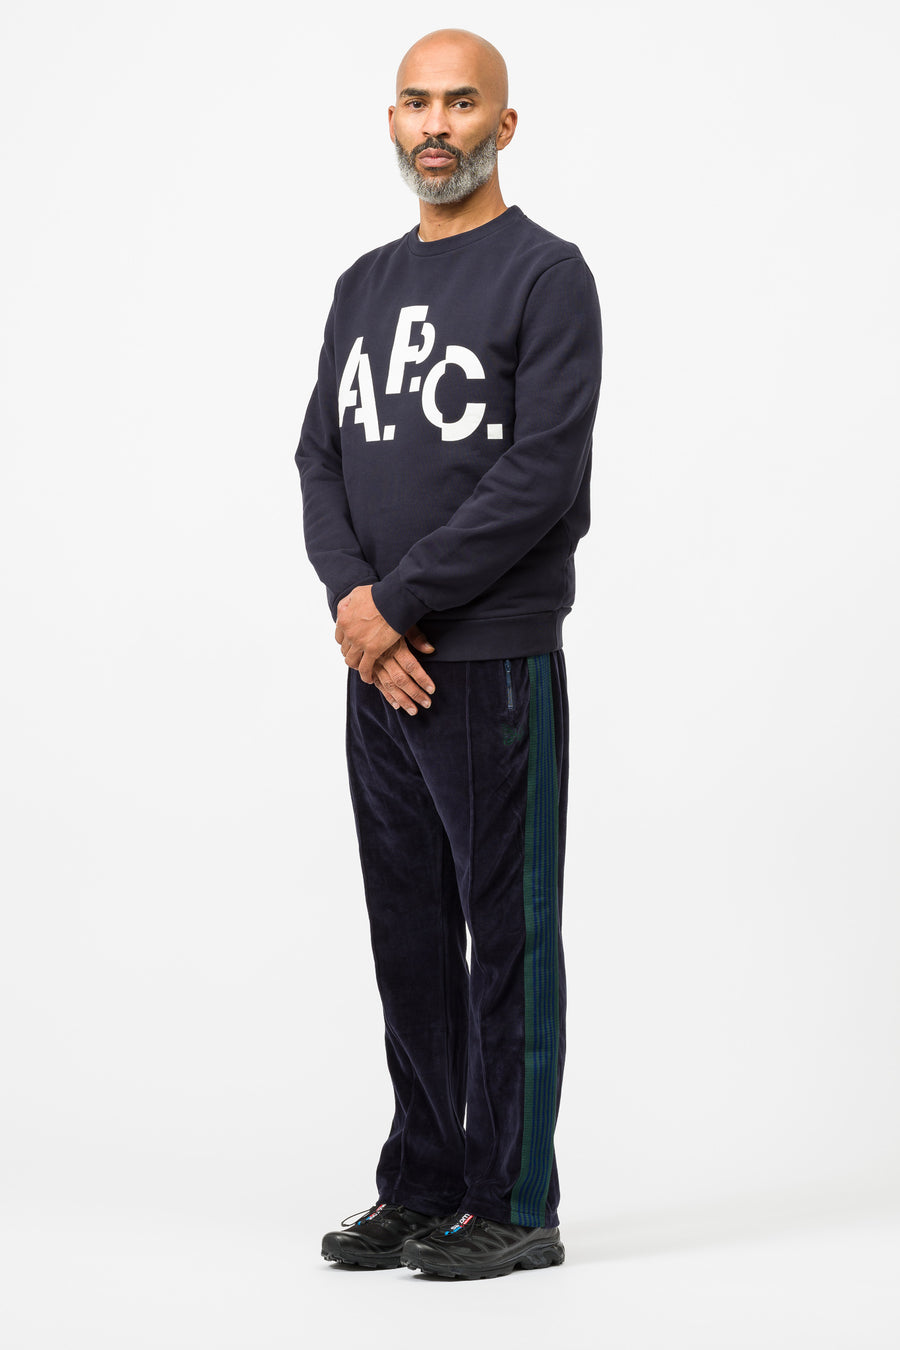 APC Misaligned Sweatshirt in Dark Navy Blue - Notre